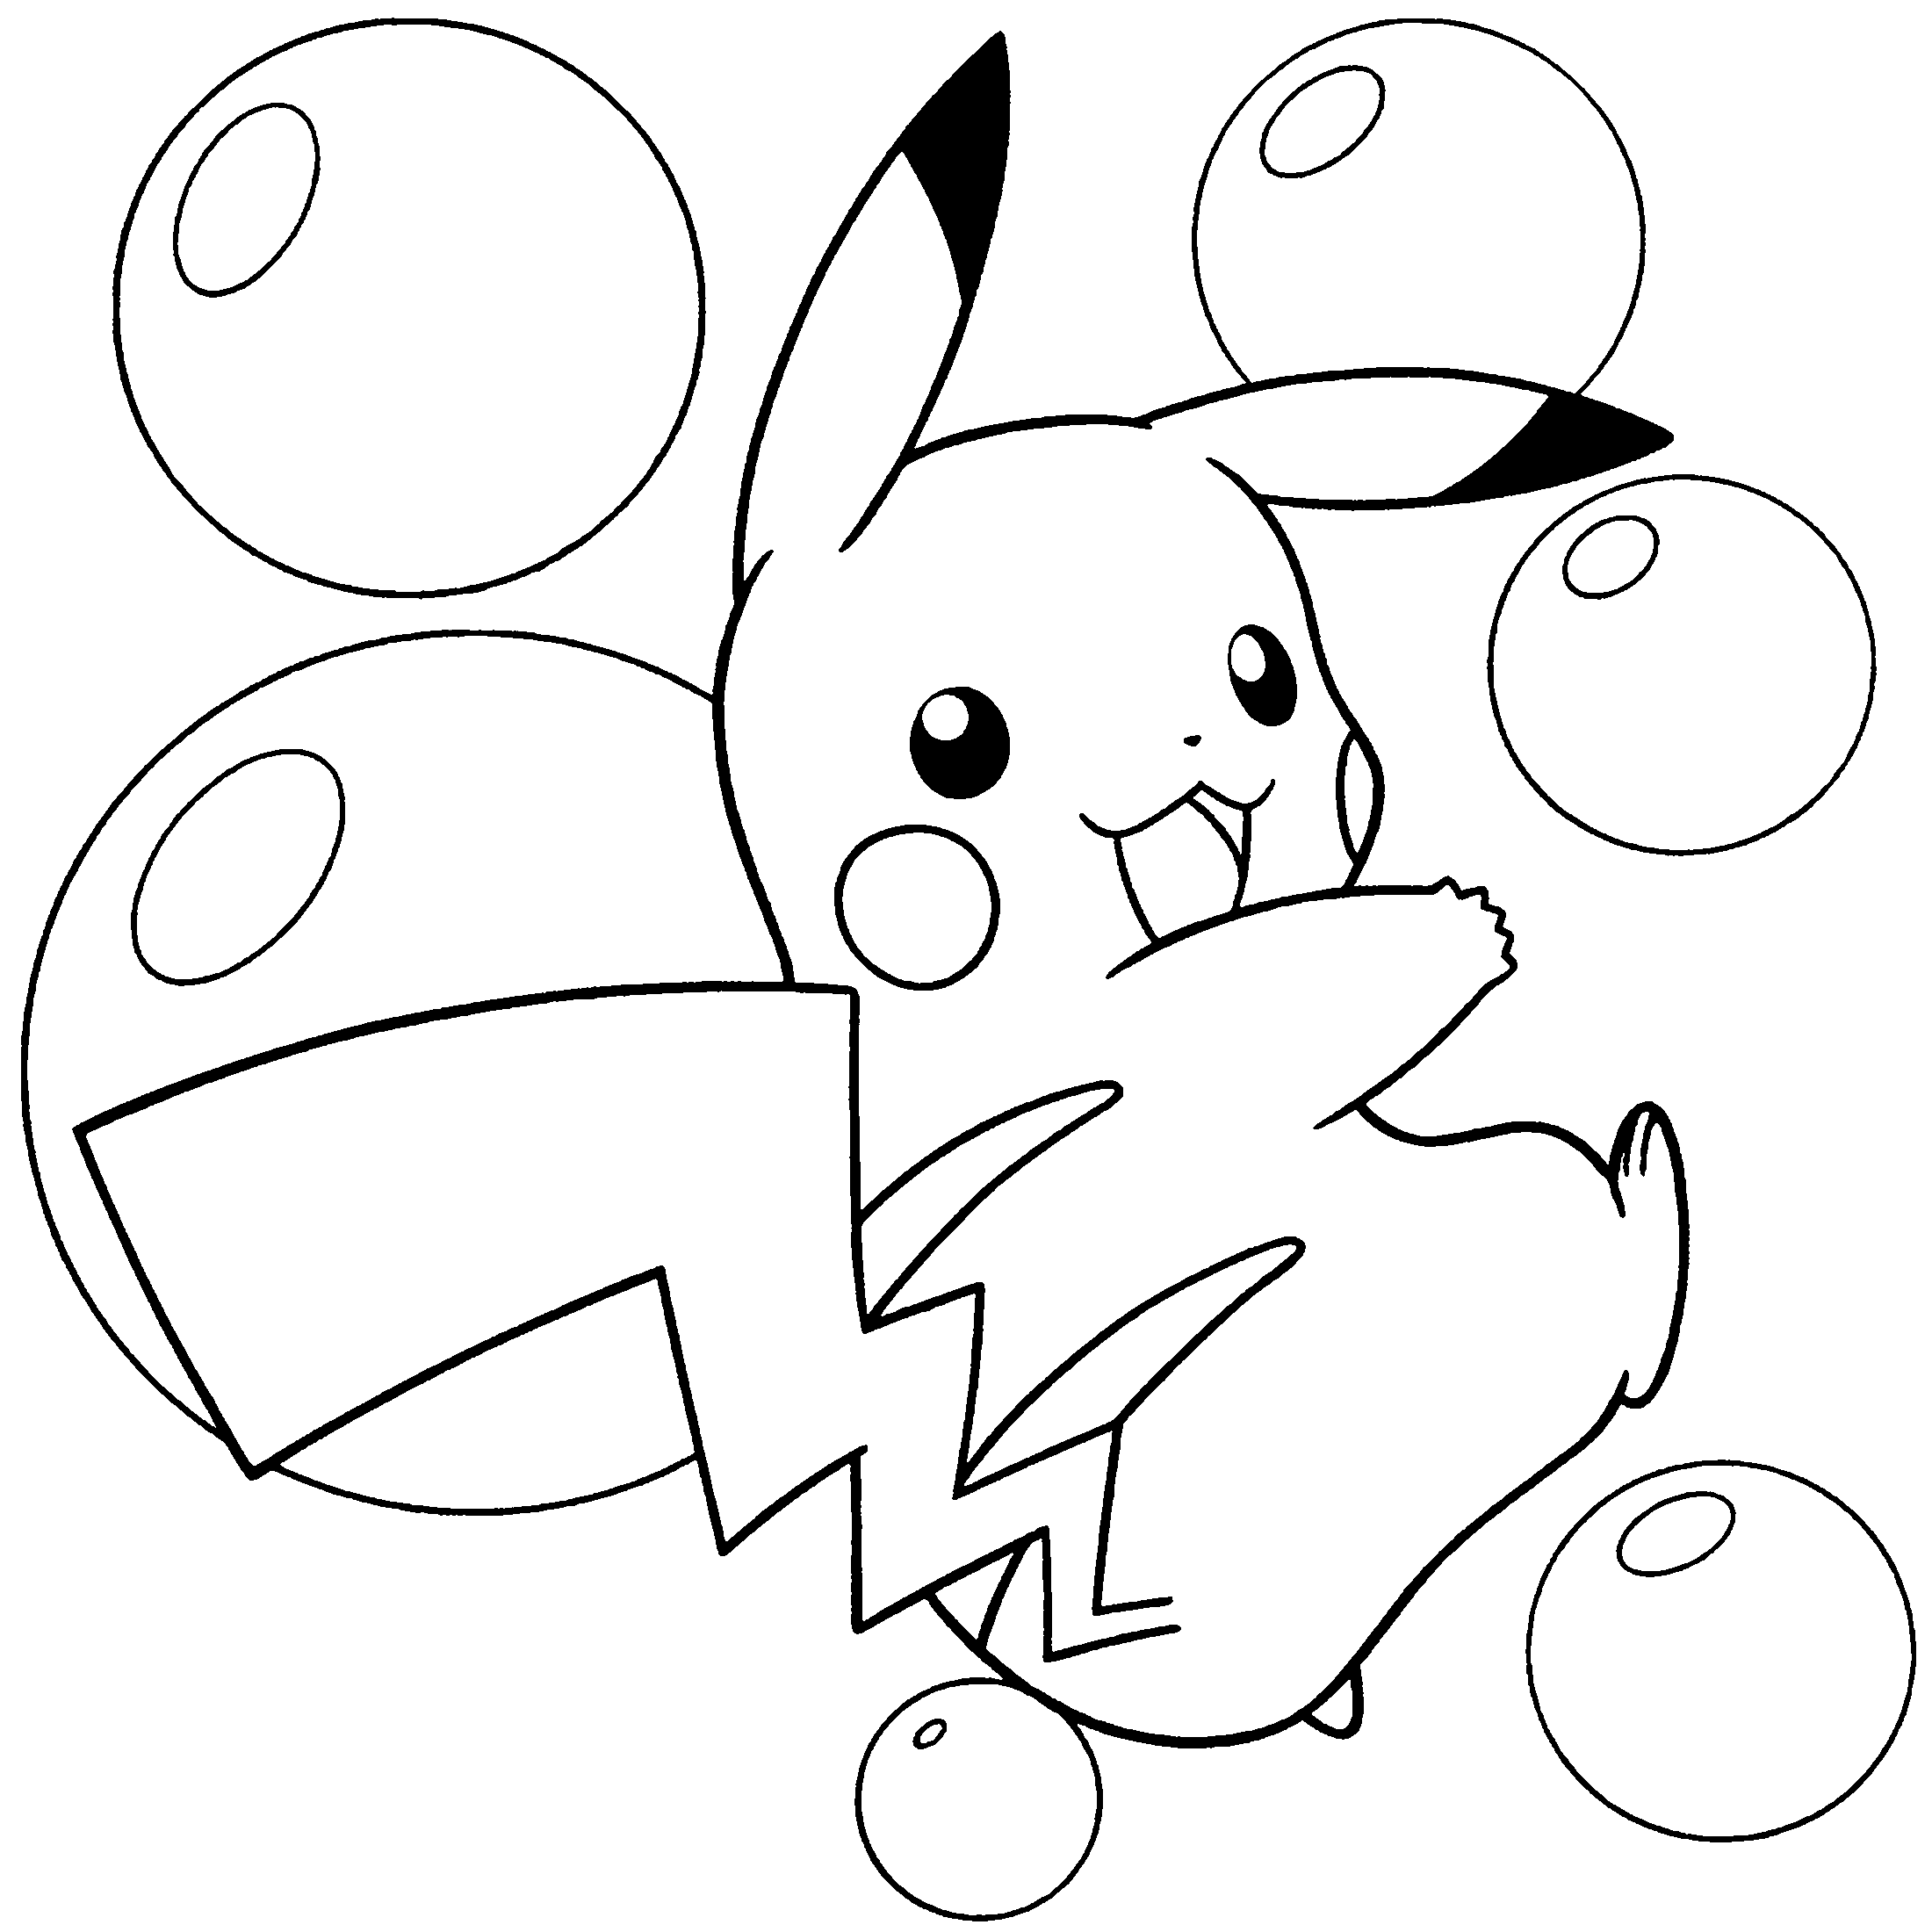 pokemon pitchers pokemon coloring pages join your favorite pokemon on an pokemon pitchers